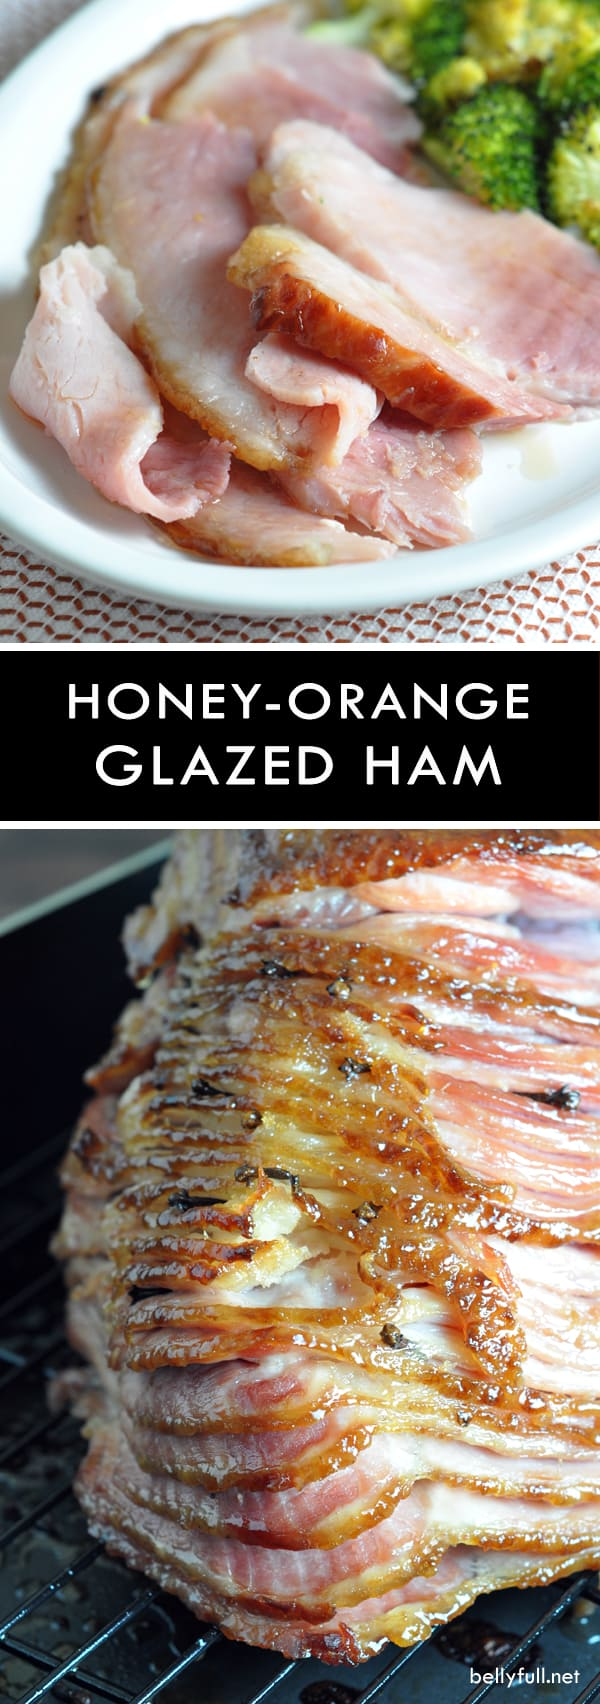 A spiral ham is studded with whole cloves then coated in a simple glaze of honey, brown sugar, and orange juice.